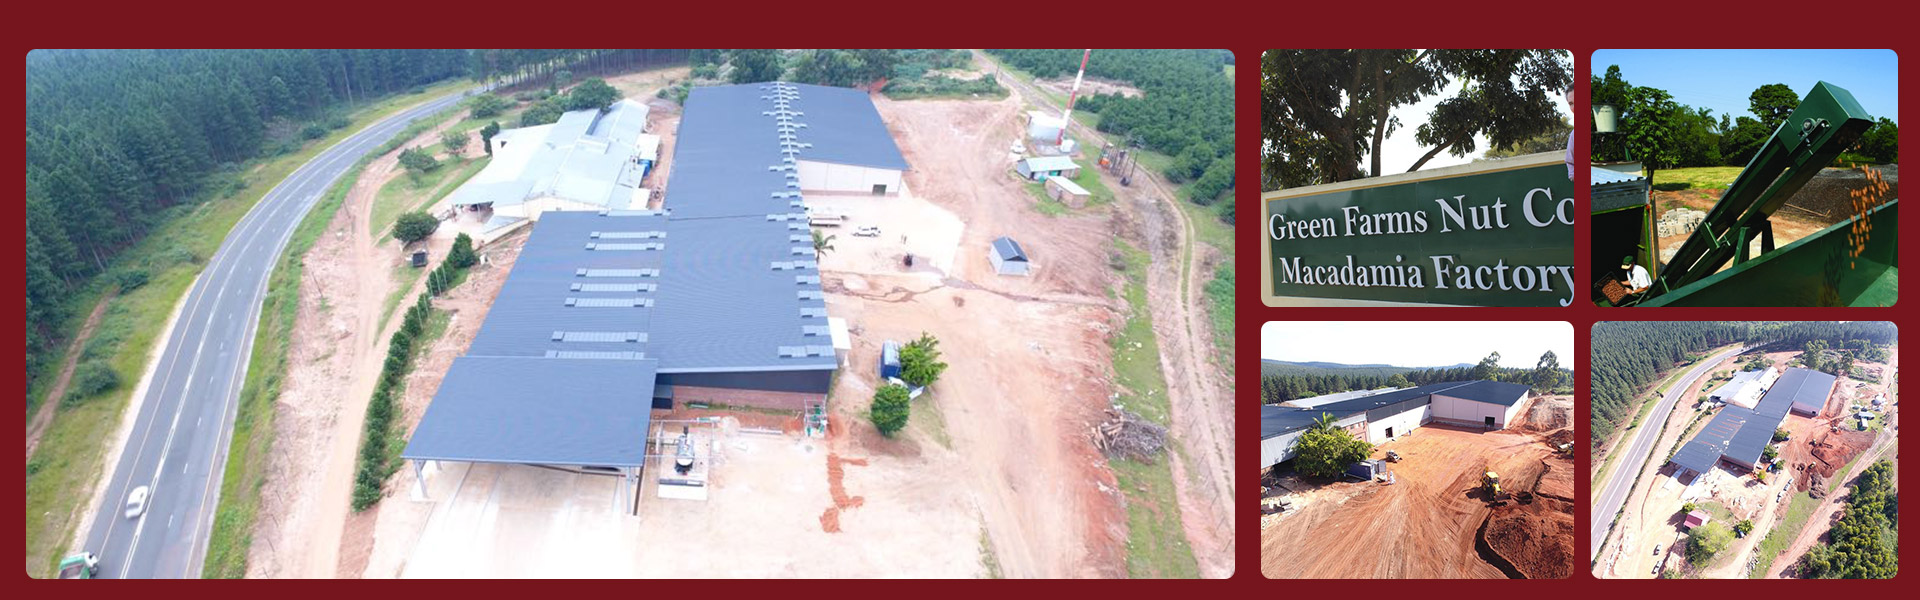 iKotwe Construction - Green Farms Nut Co White River